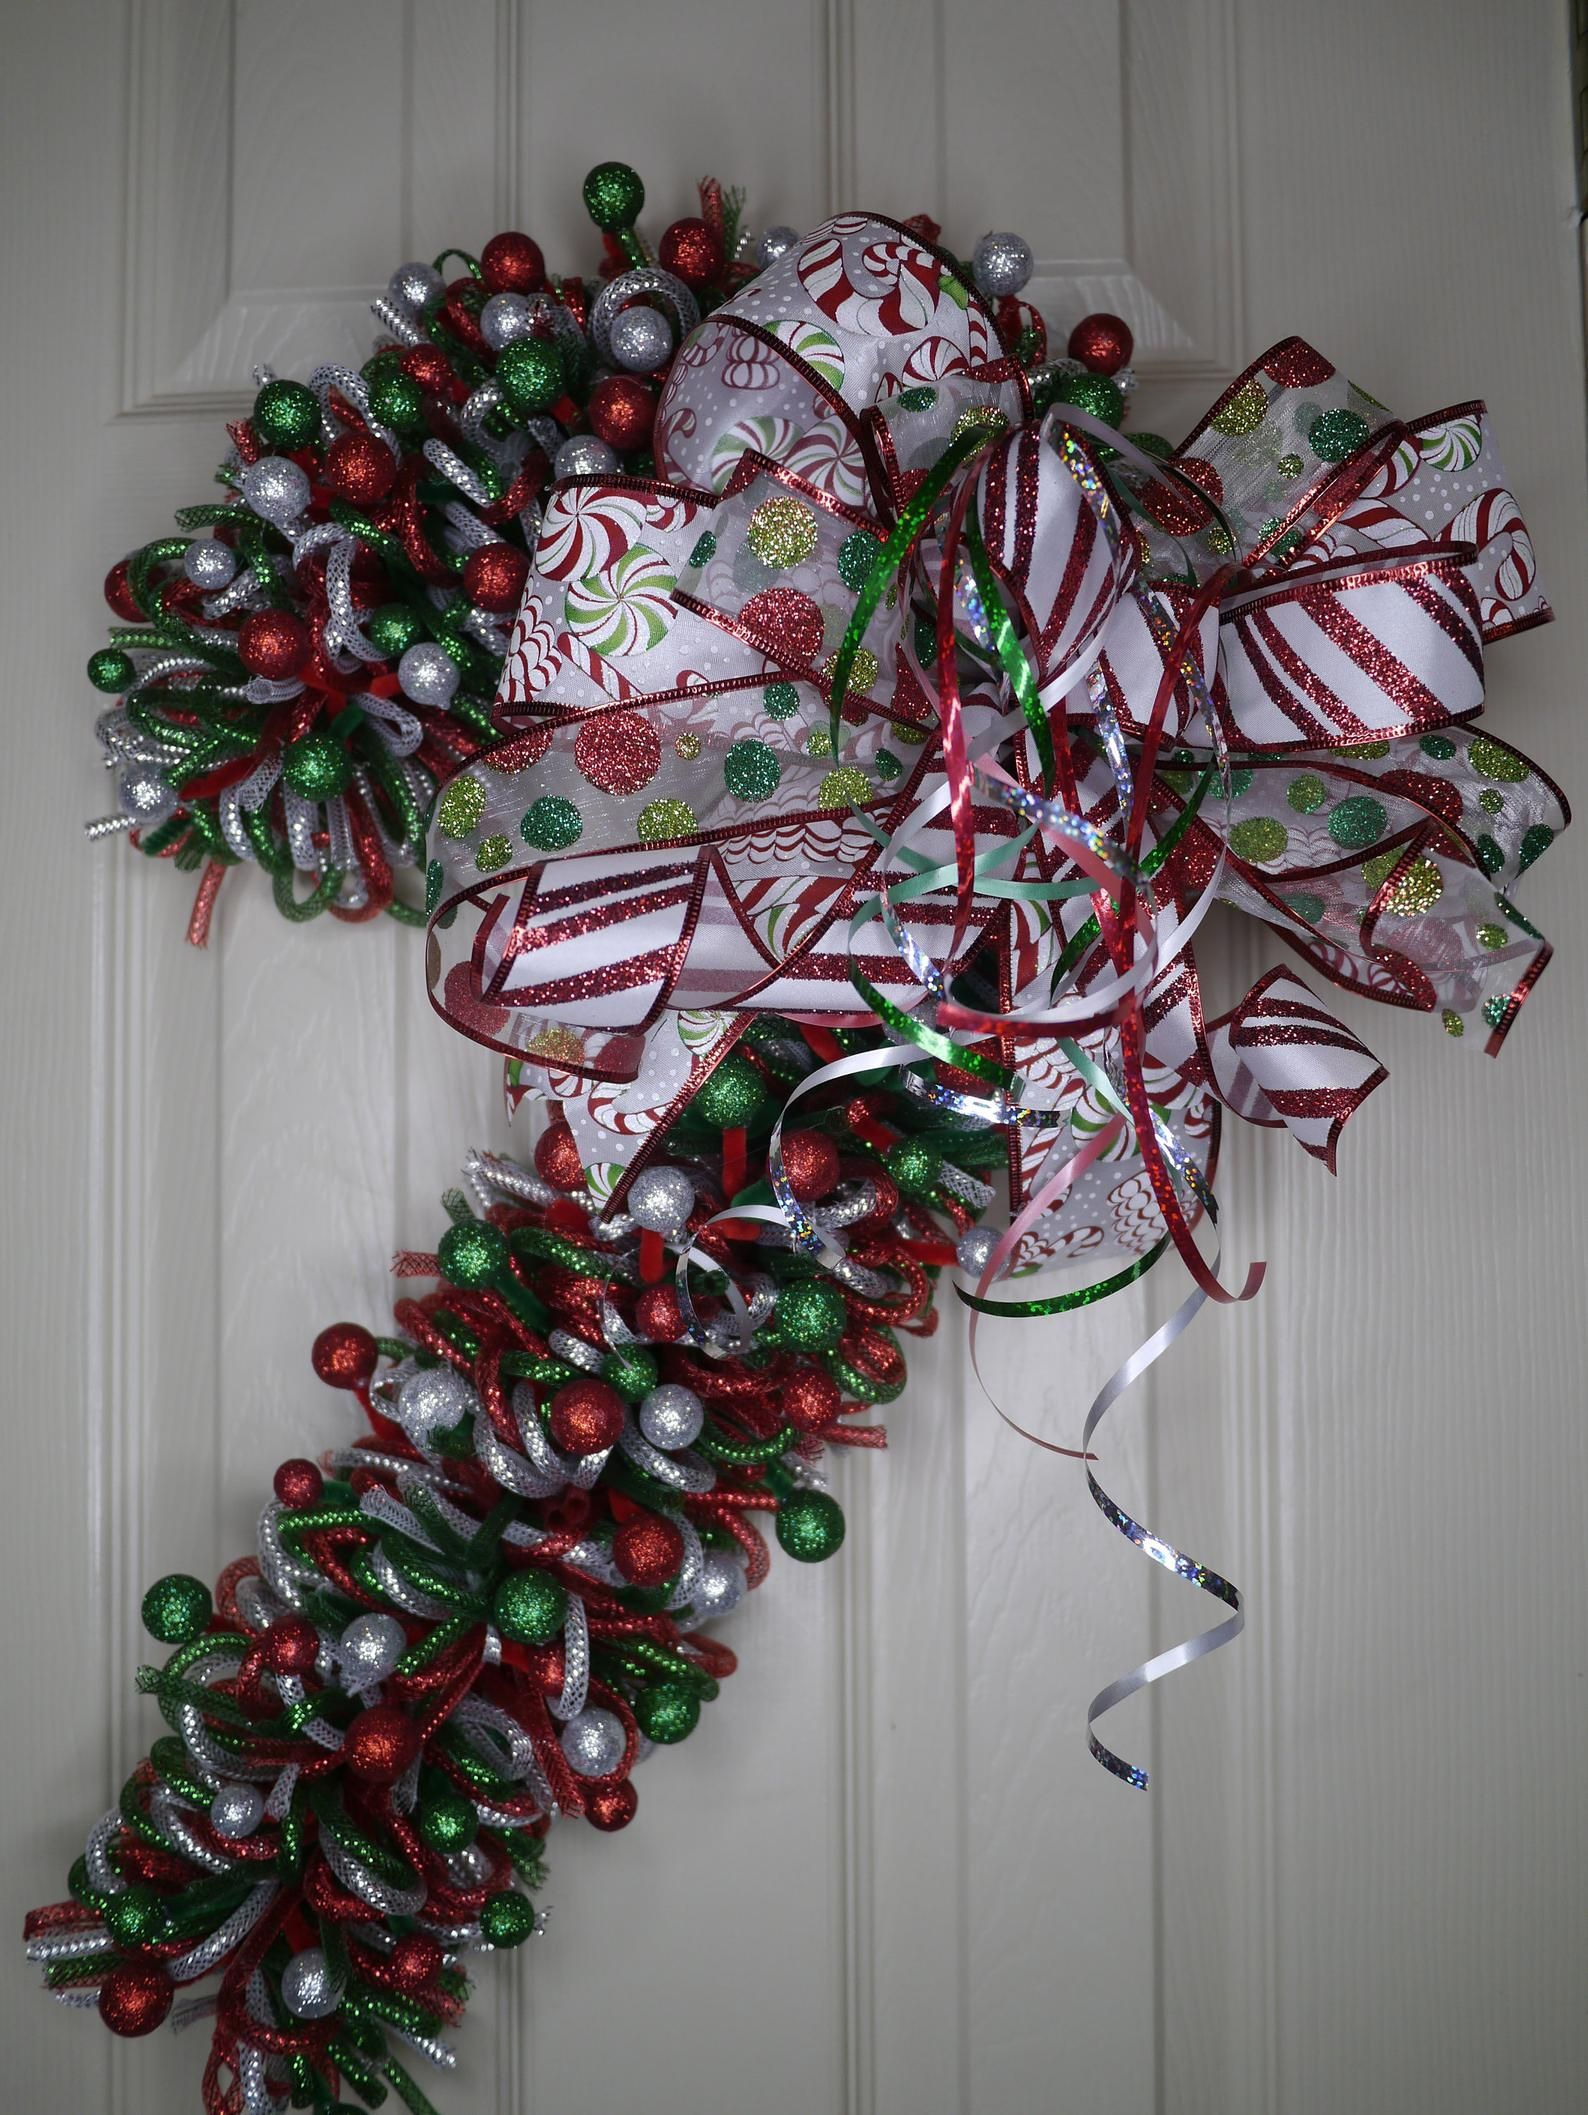 Christmas Wreath, Candy Cane, Candy Cane Christmas Wreath, Candy Cane Decor, Front Door Wreath, Holiday Wreath, FREE Shipping, Mesh Tubing